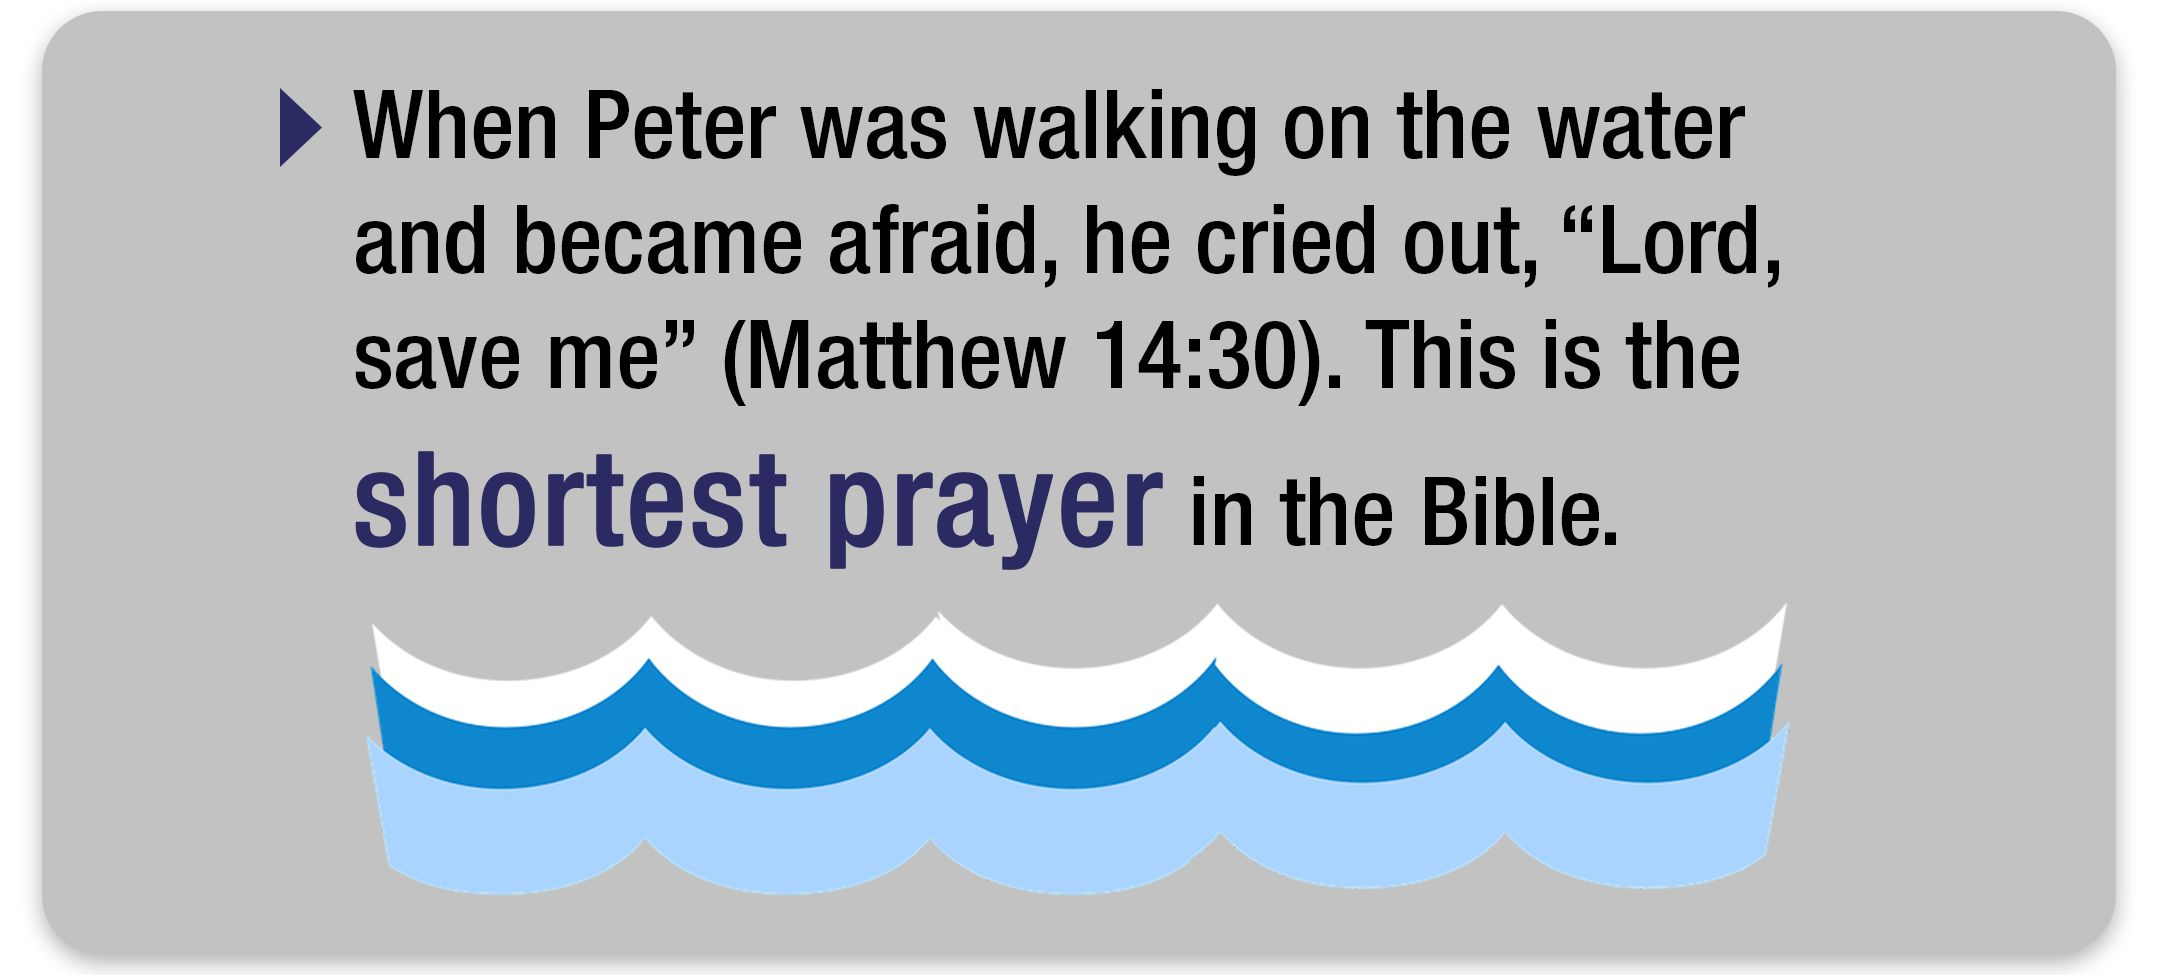 Do you know the shortest prayer in the Bible? Short